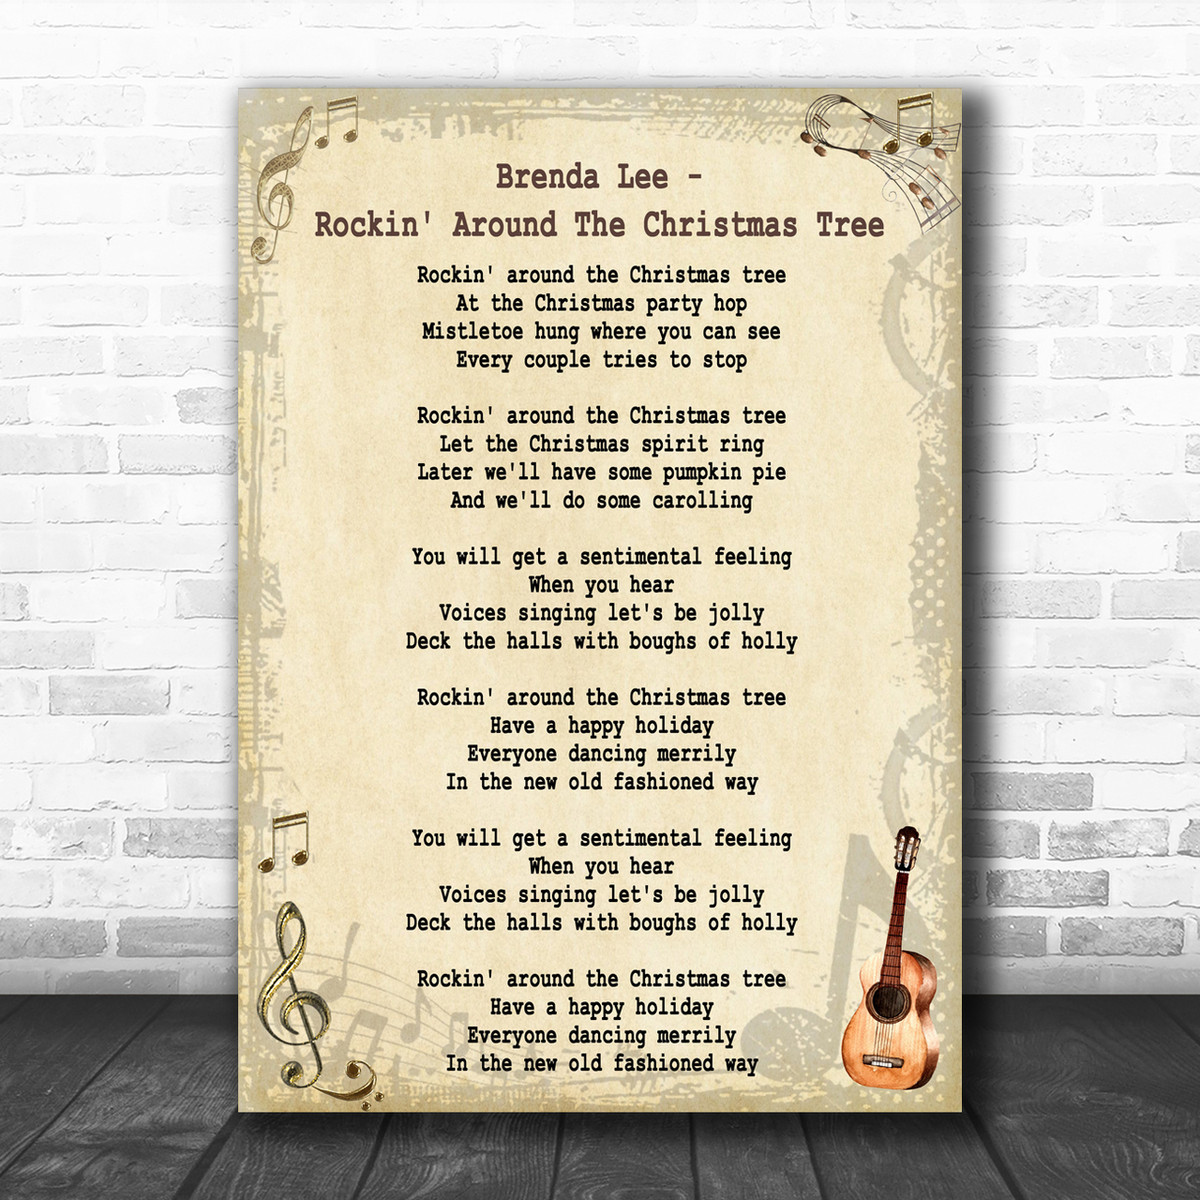 Brenda Lee Rockin Around The Christmas Tree Lyrics.Brenda Lee Rockin Around The Christmas Tree Song Lyric Music Wall Art Print